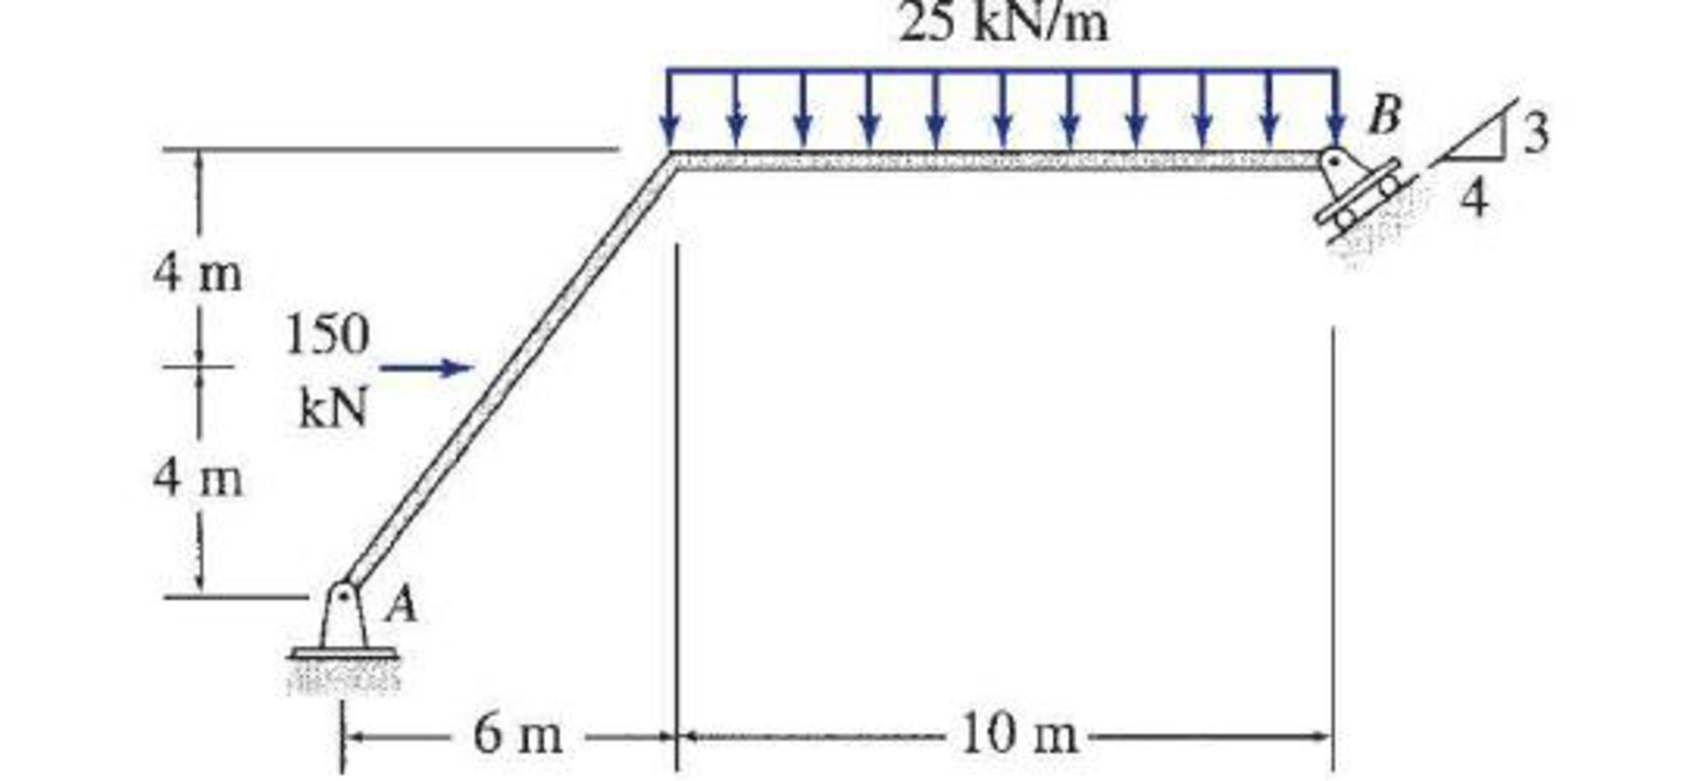 Chapter 3, Problem 24P, Determine the reactions at the supports for the structures shown. FIG.P3.24